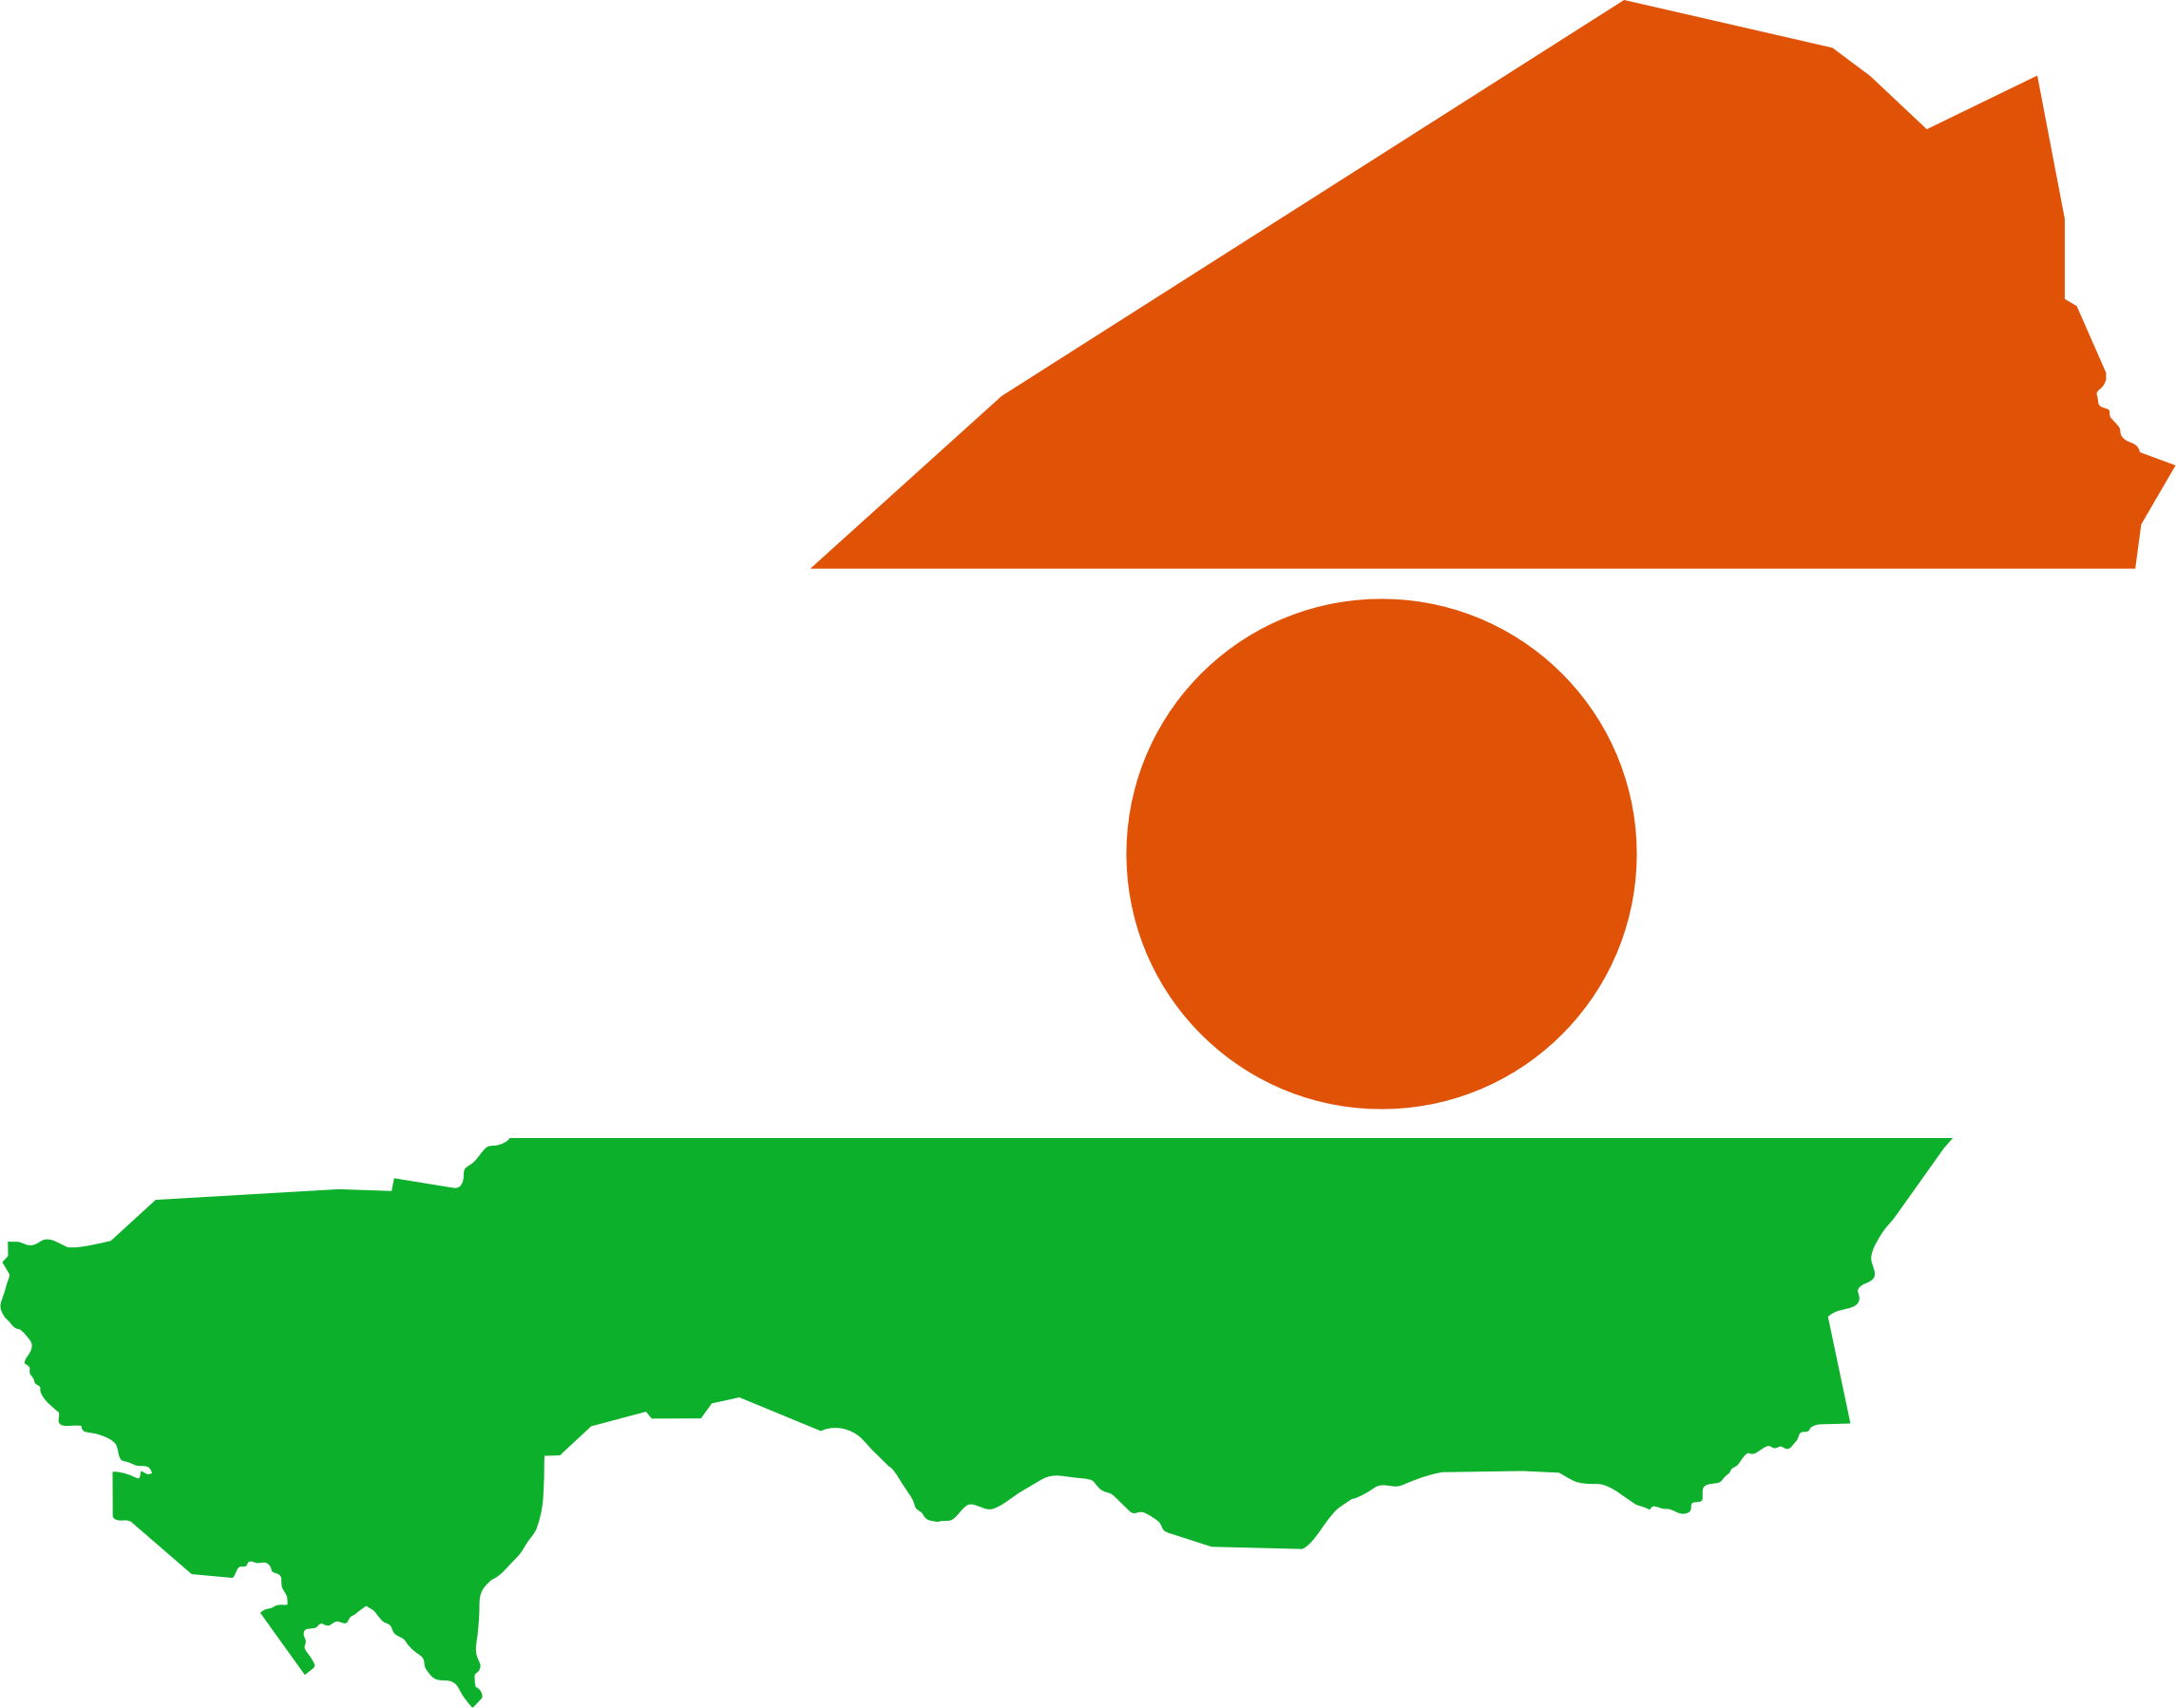 Niger group flag. Clipart map nearby